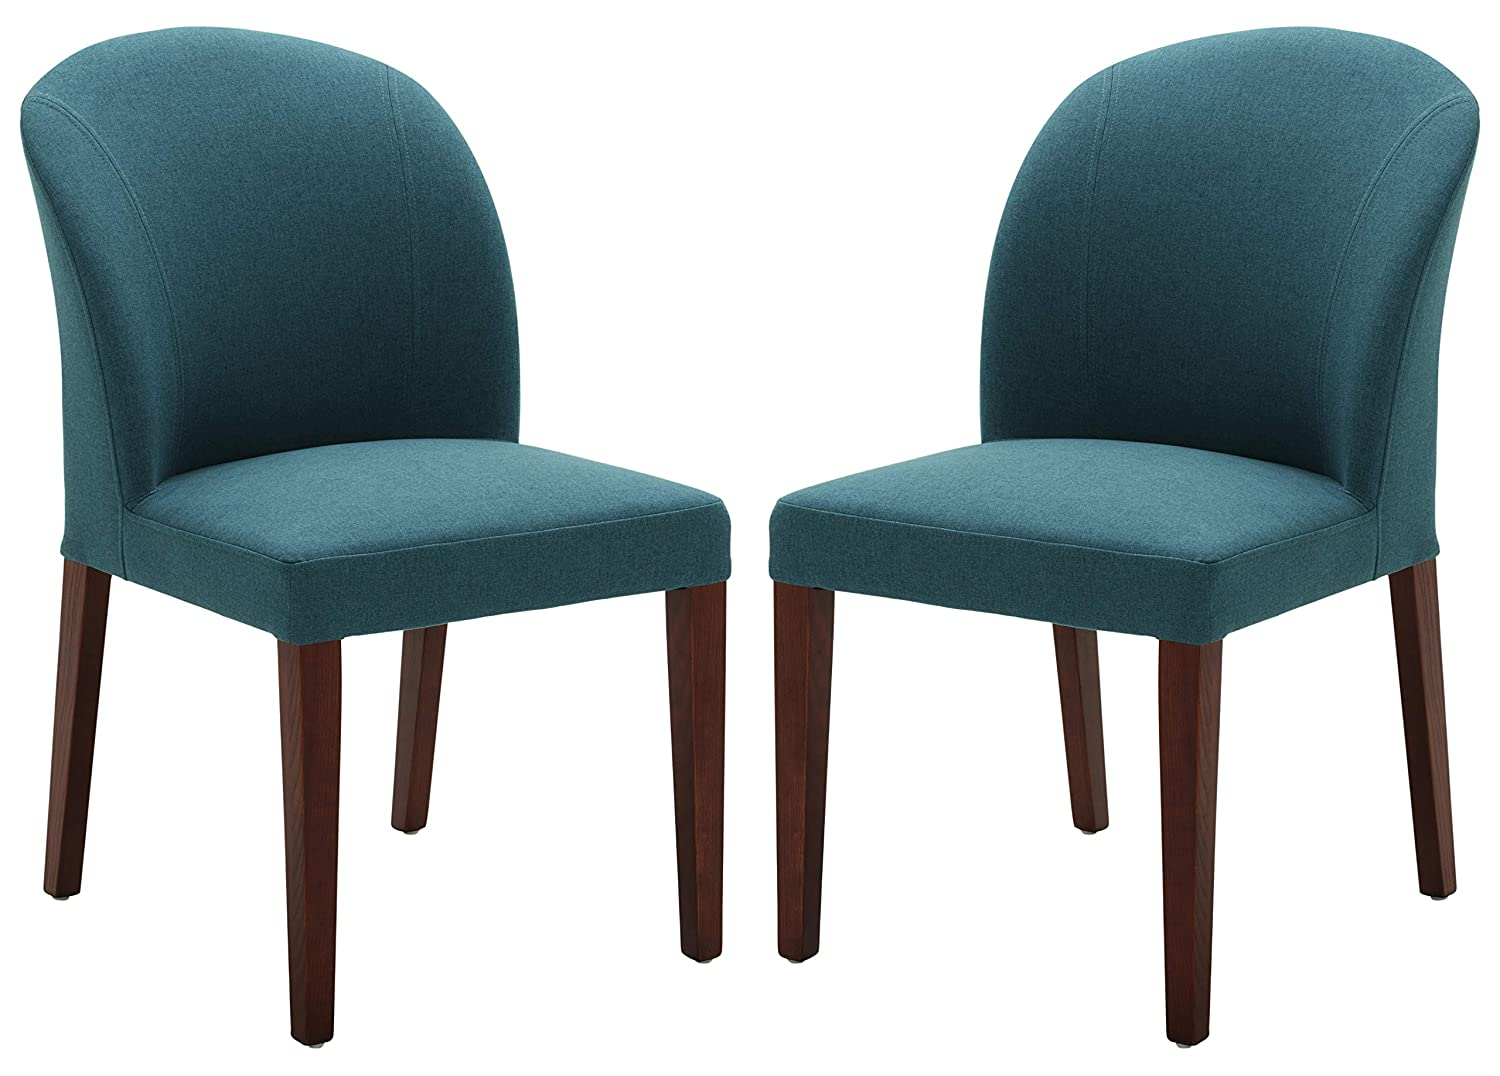 Rivet Contemporary Curved-Back Armless Dining Chair, 35 H, Aqua, Set of 2